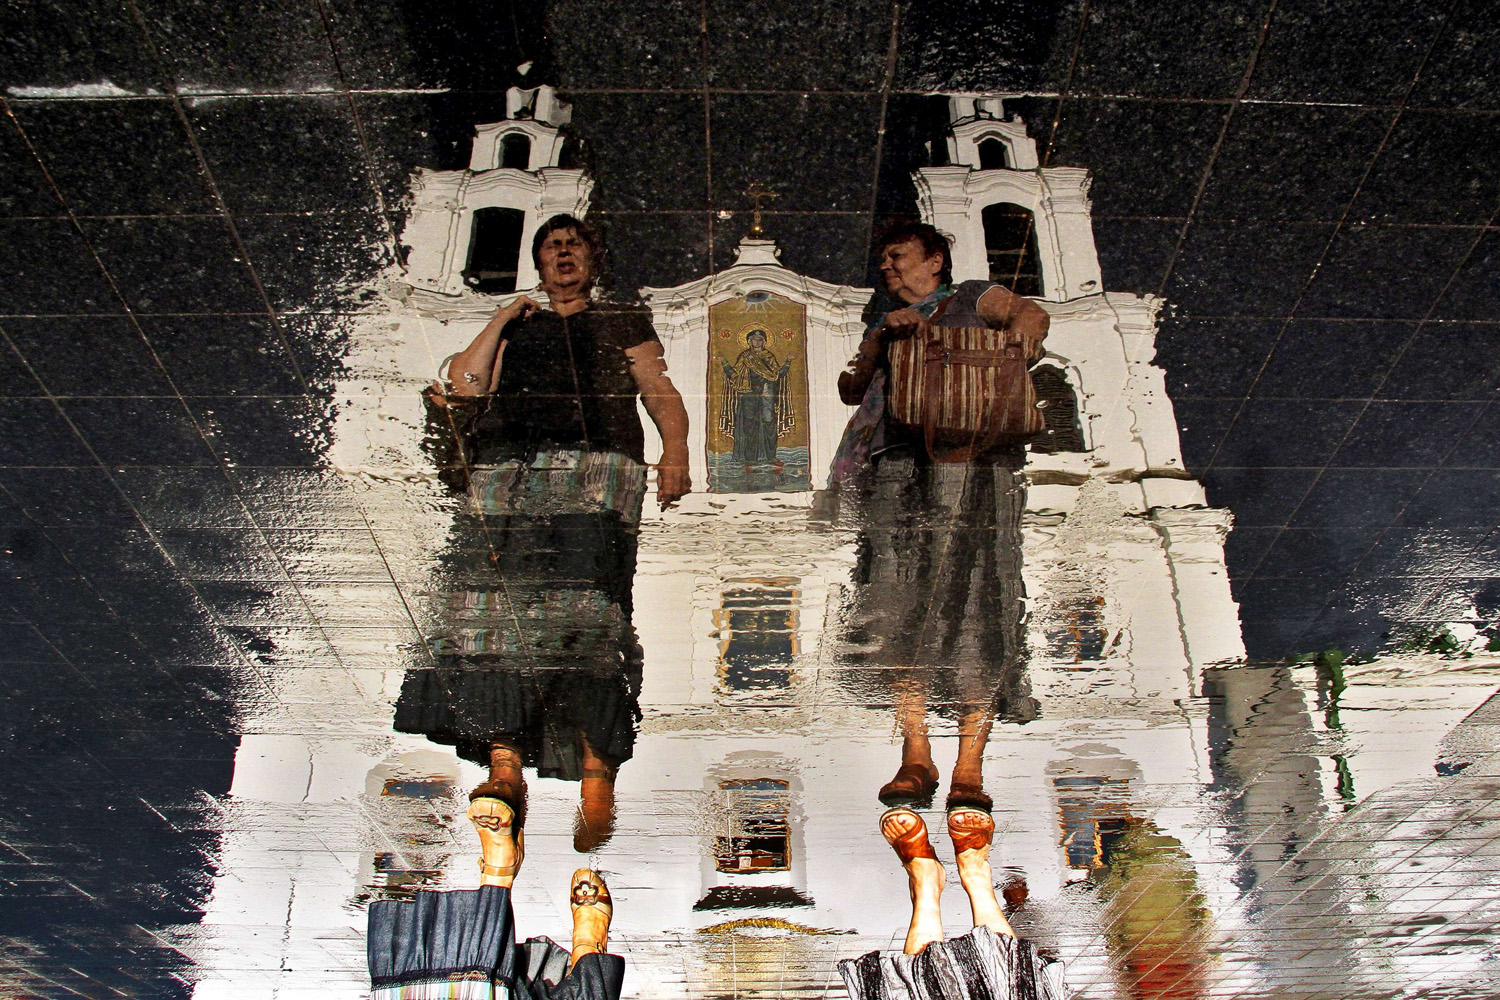 Jul. 20, 2014. Two women walking in front of  Svyato-Dukhov (Holy Spirit ) Orthodox cathedral  are reflected in the wet tablets of a roadway in the Belarus capital Minsk.